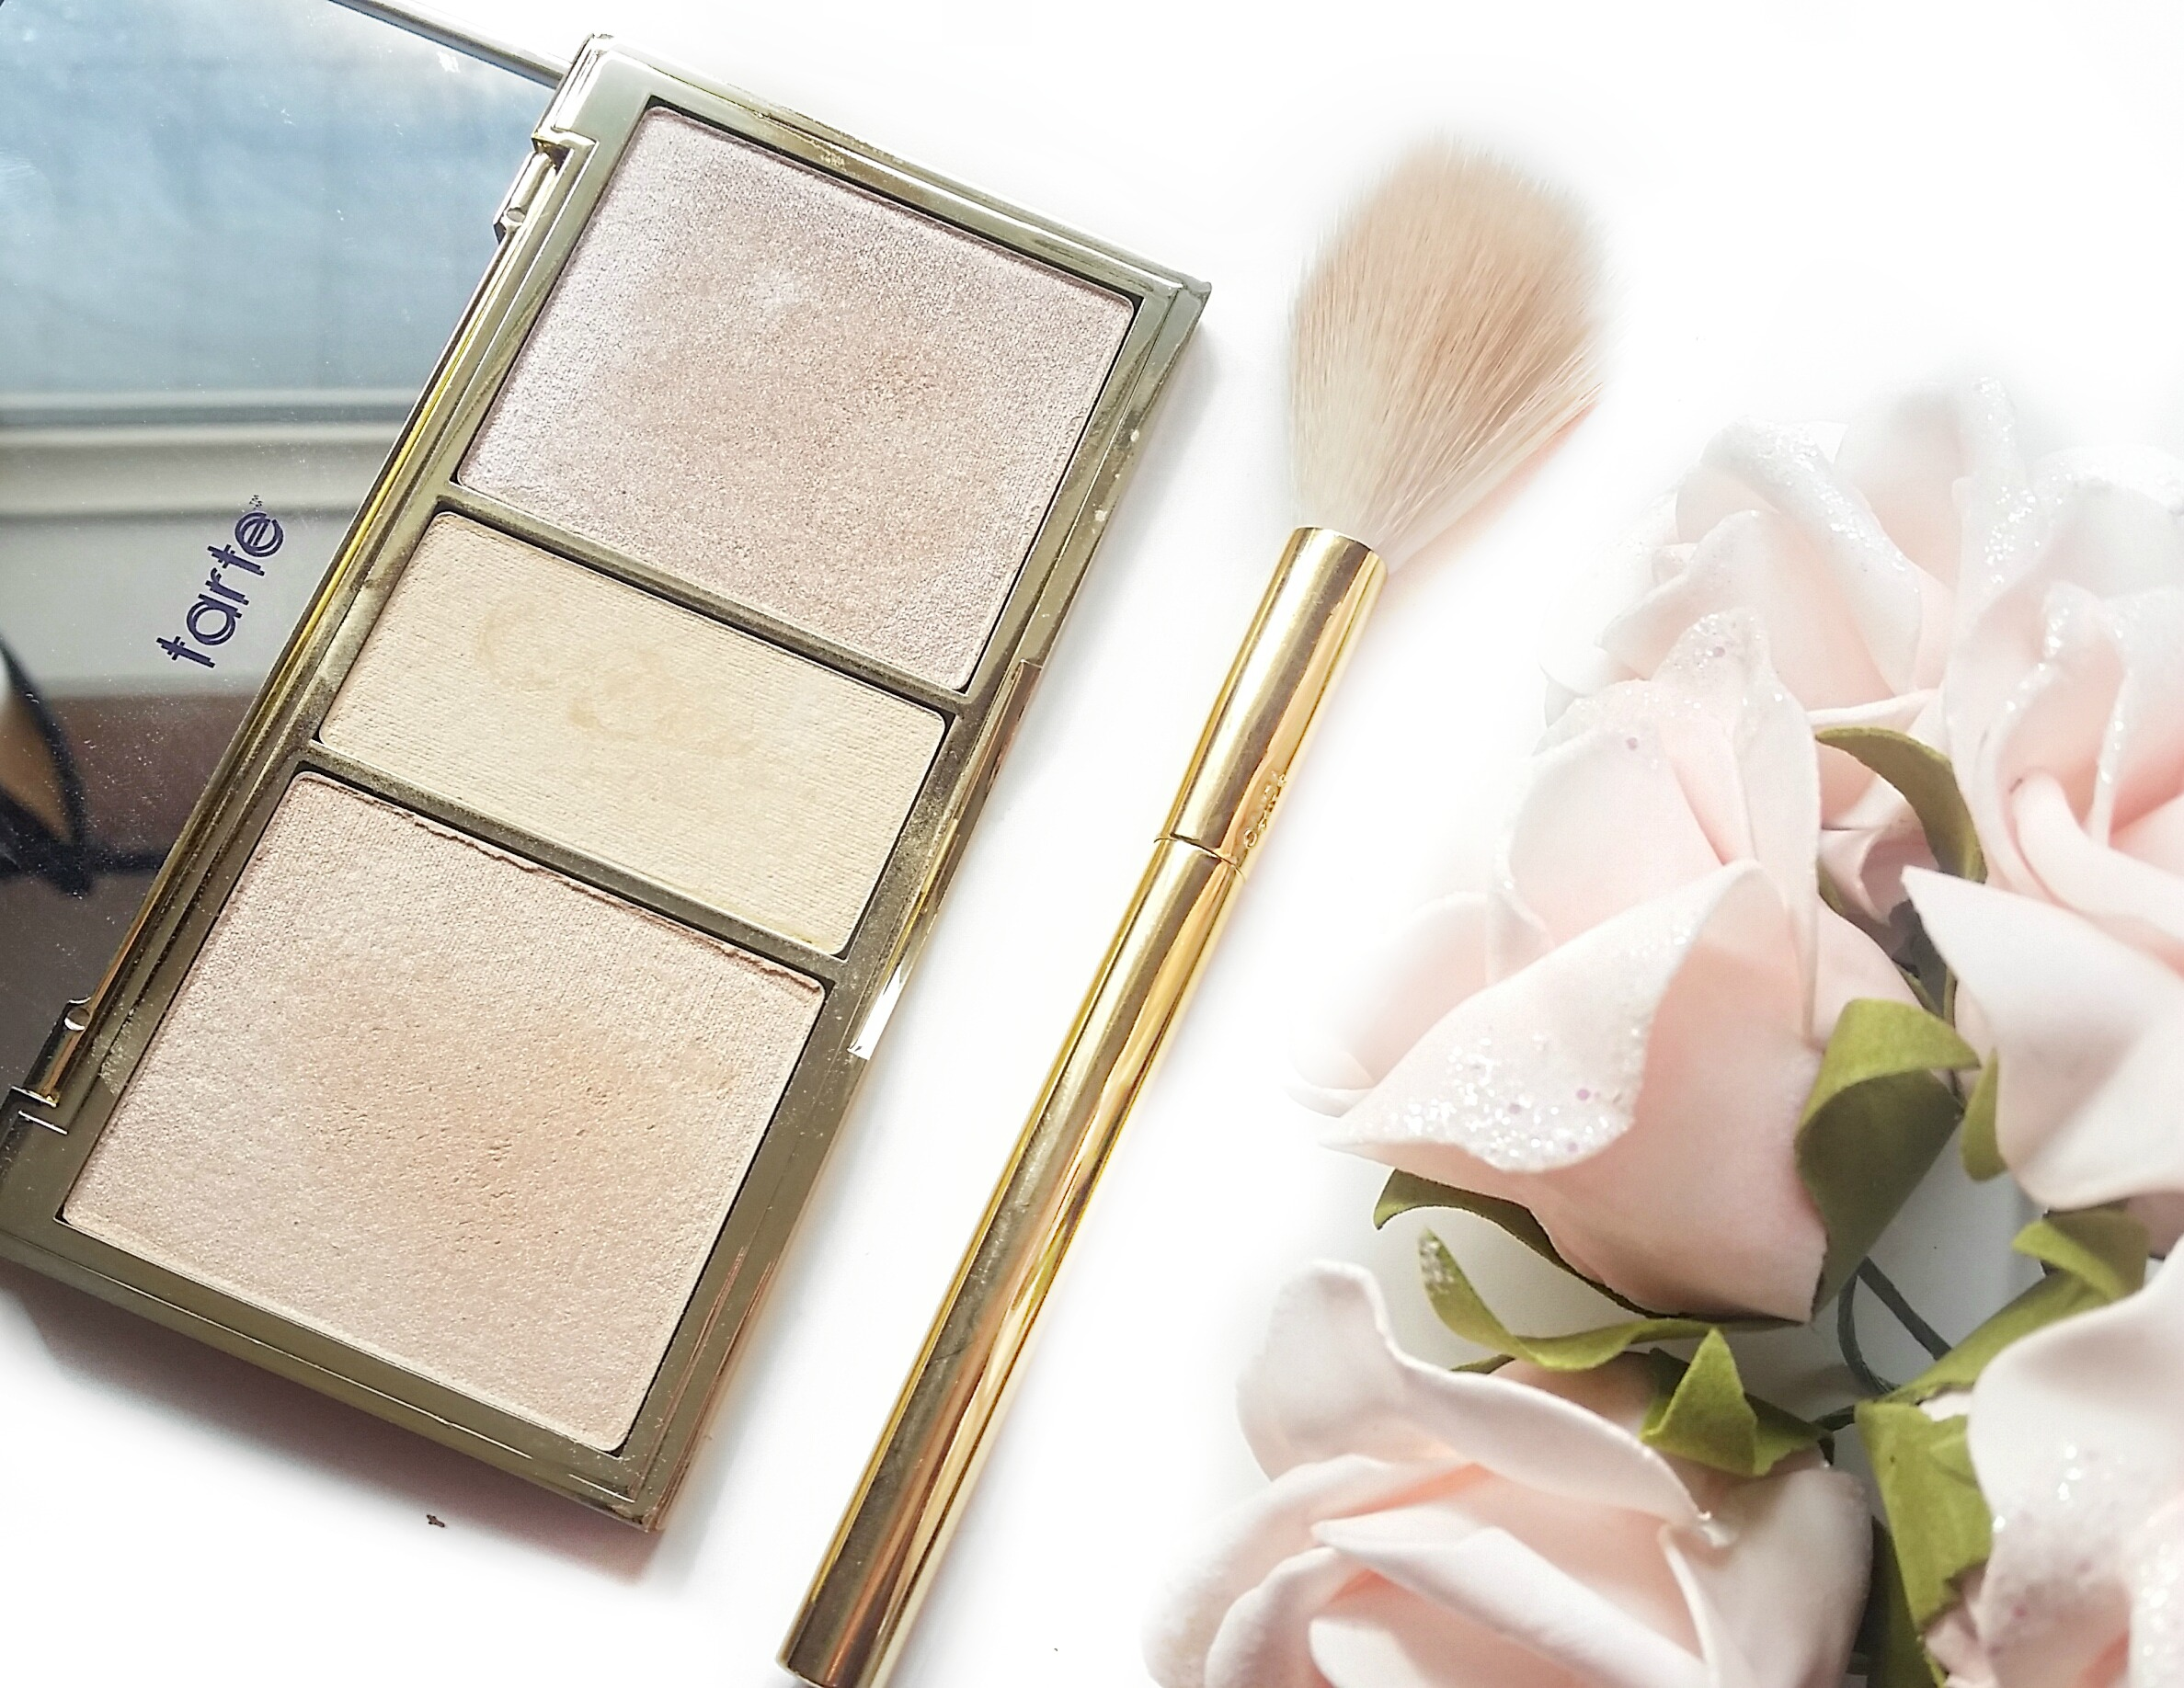 Tarte Rainforest Of the Sea Skin Twinkle Lighting Palette – Review